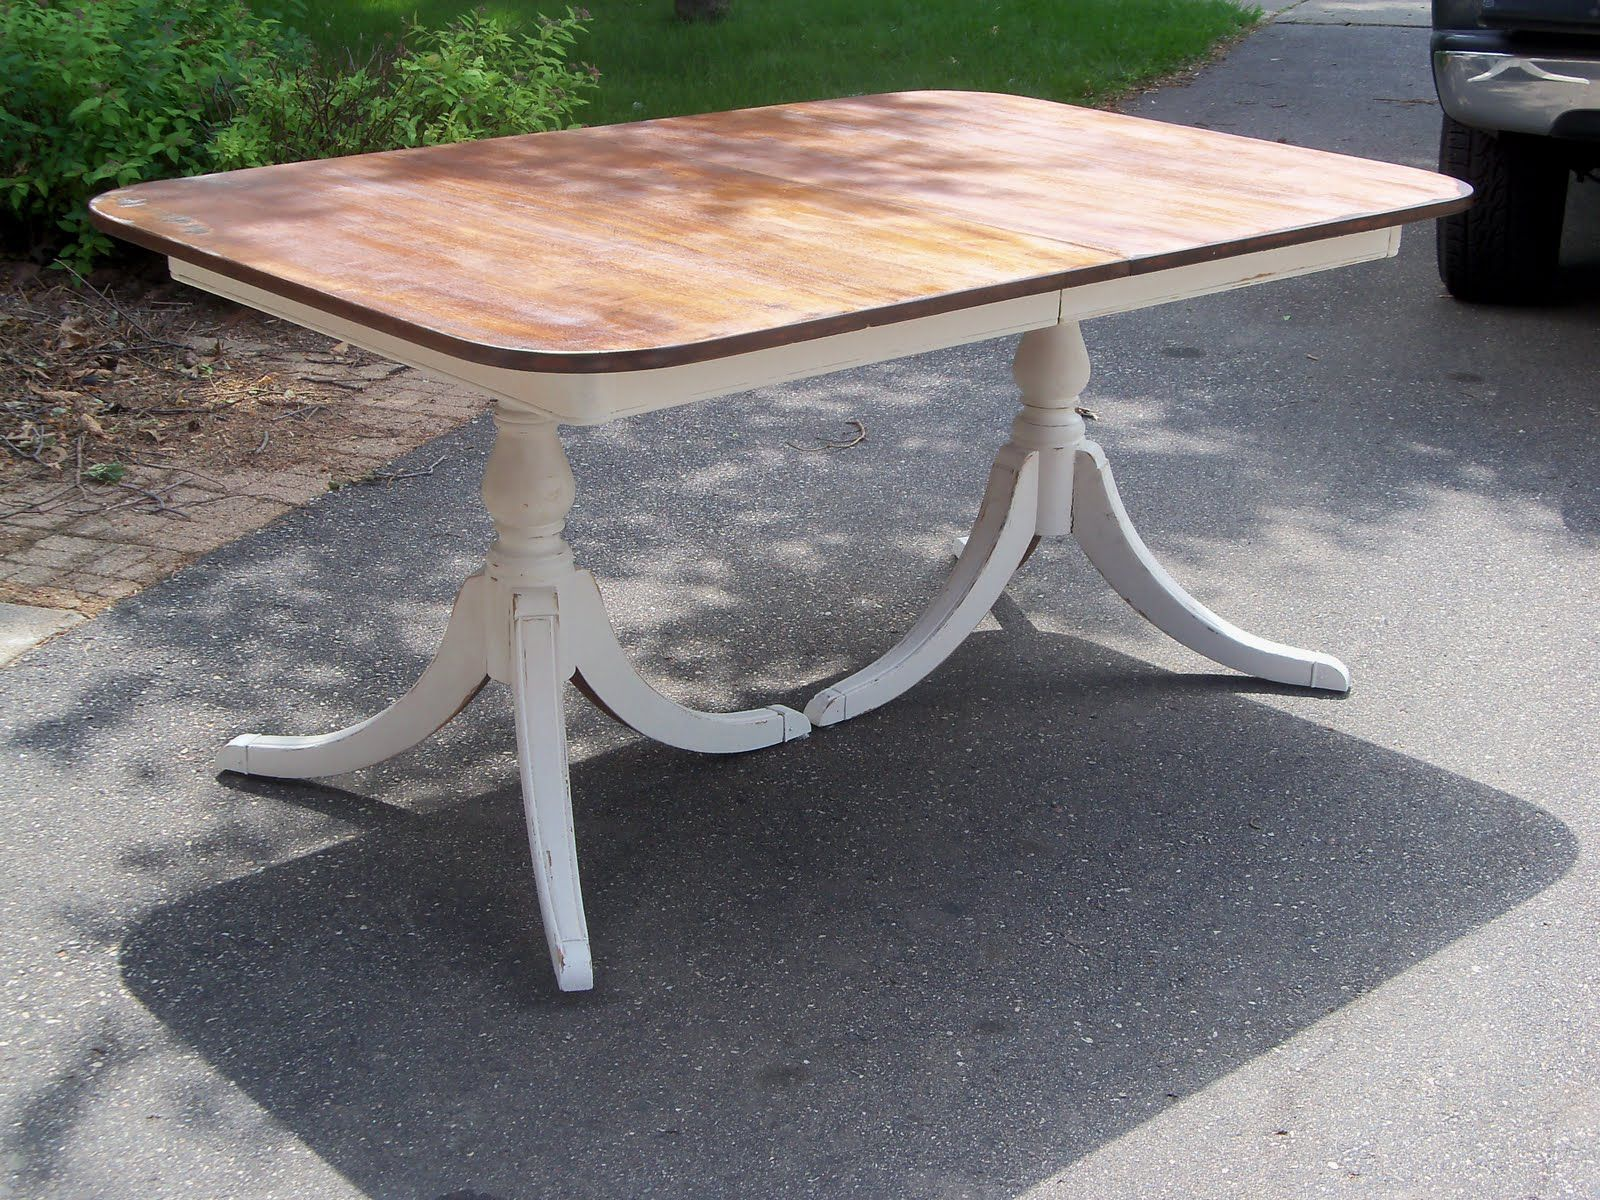 Country Style Accents A Duncan phyfe table that sums up what